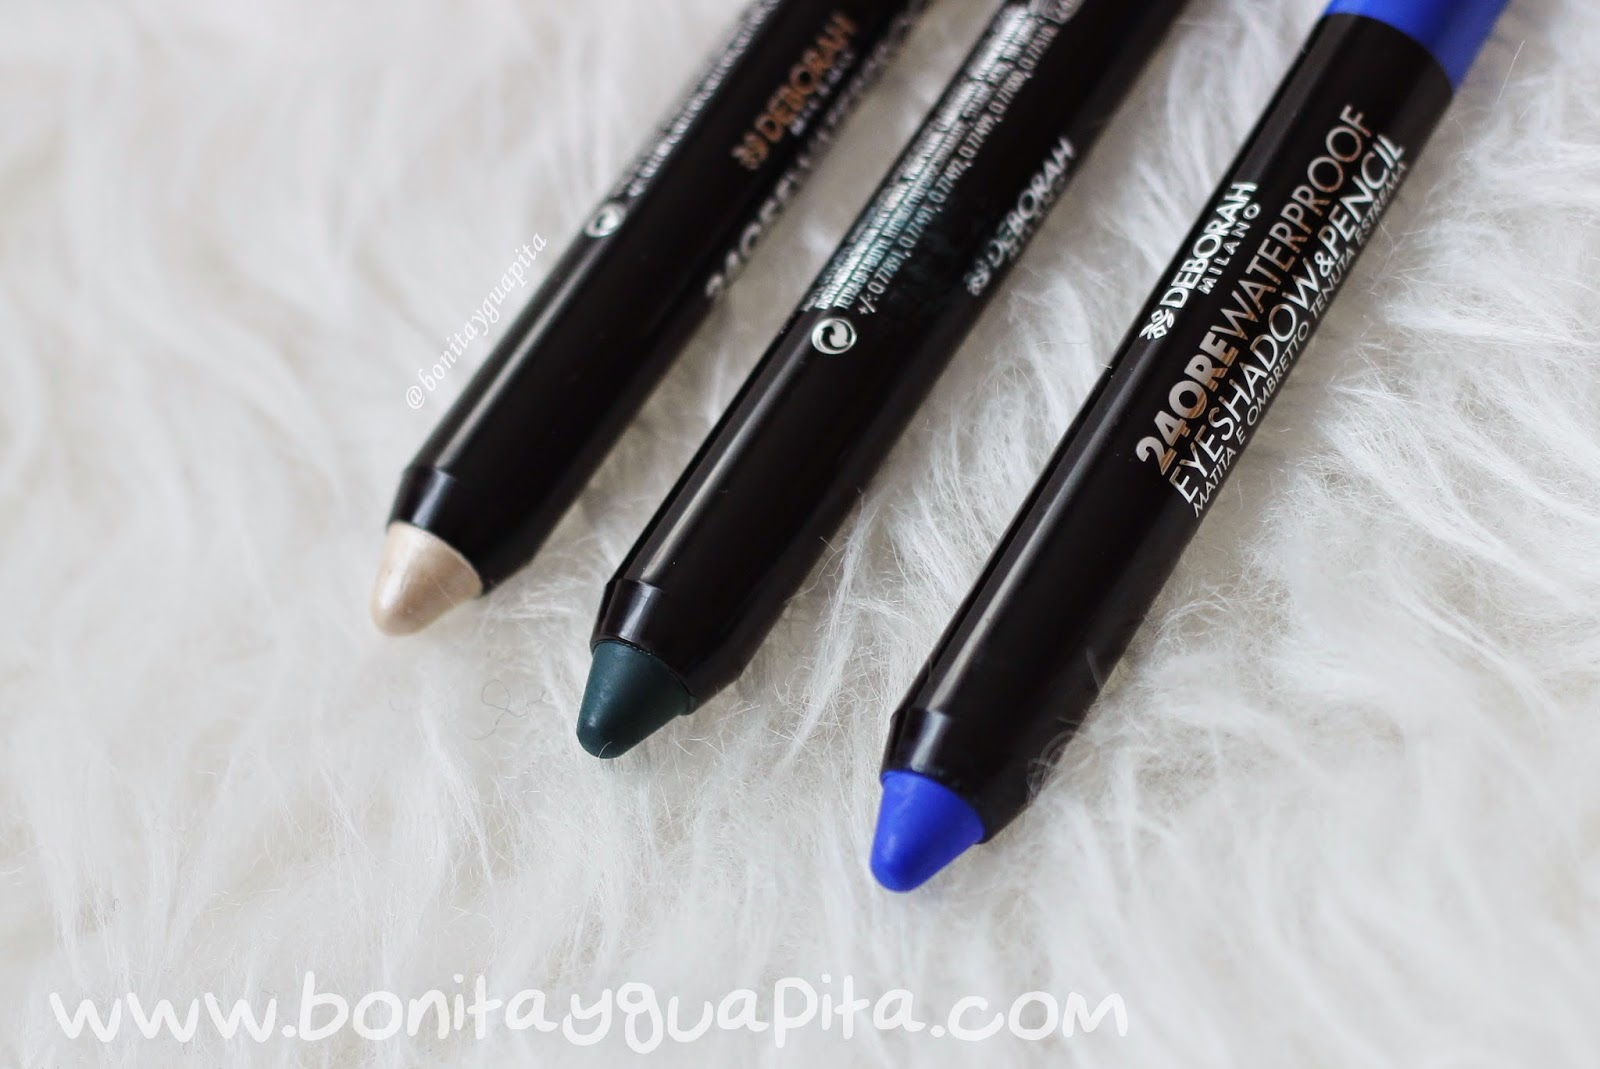 24 ore waterproof eyeshadow & pencil